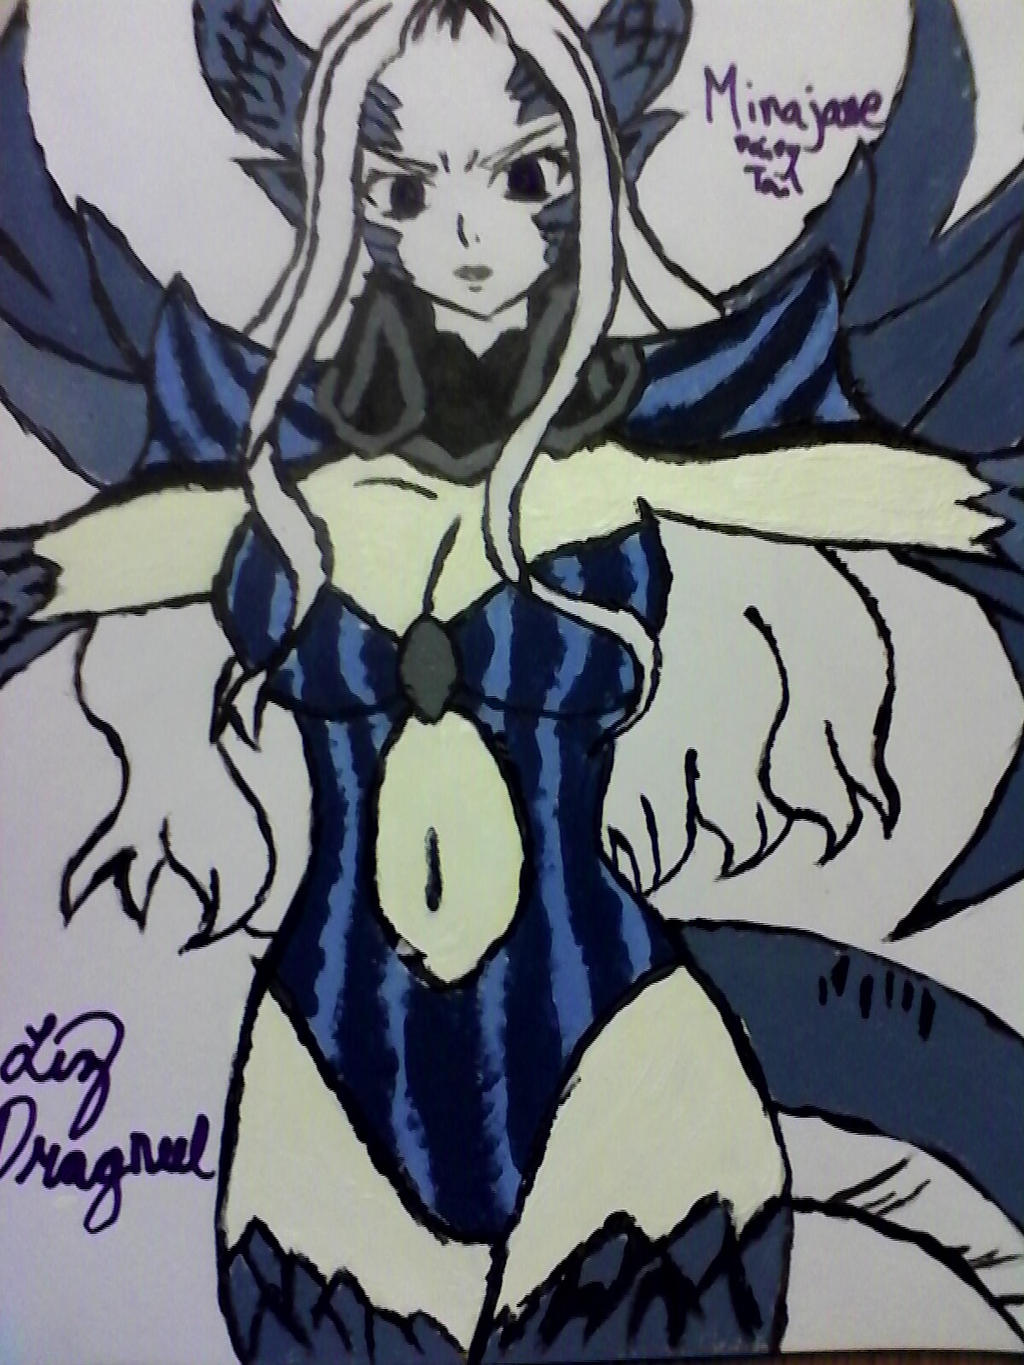 my drawing of mirajane from fairy tail by lizdragneel on